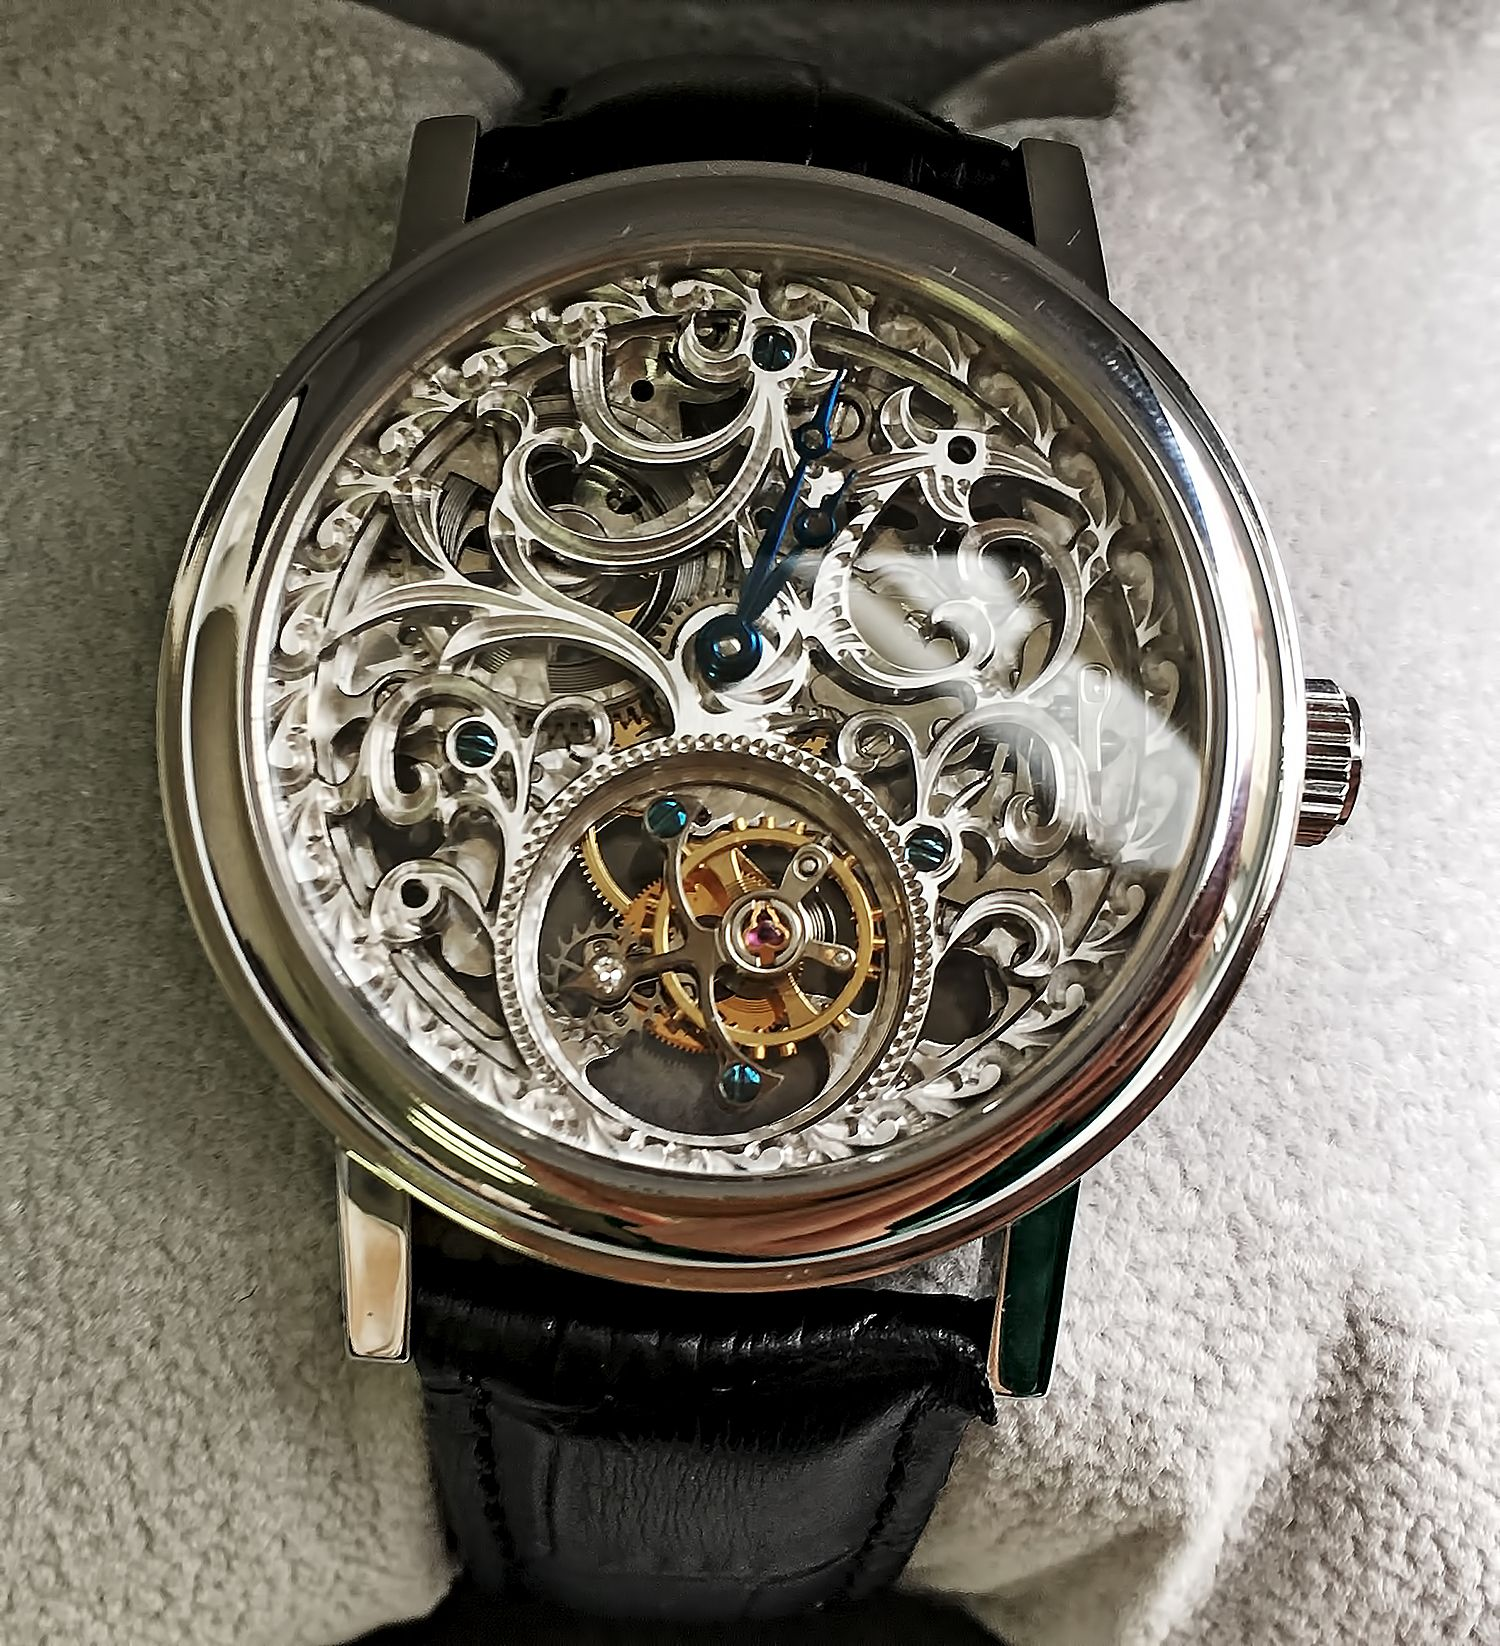 Хронометр Breguet Classique Skeleton Tourbillon Steel Watch